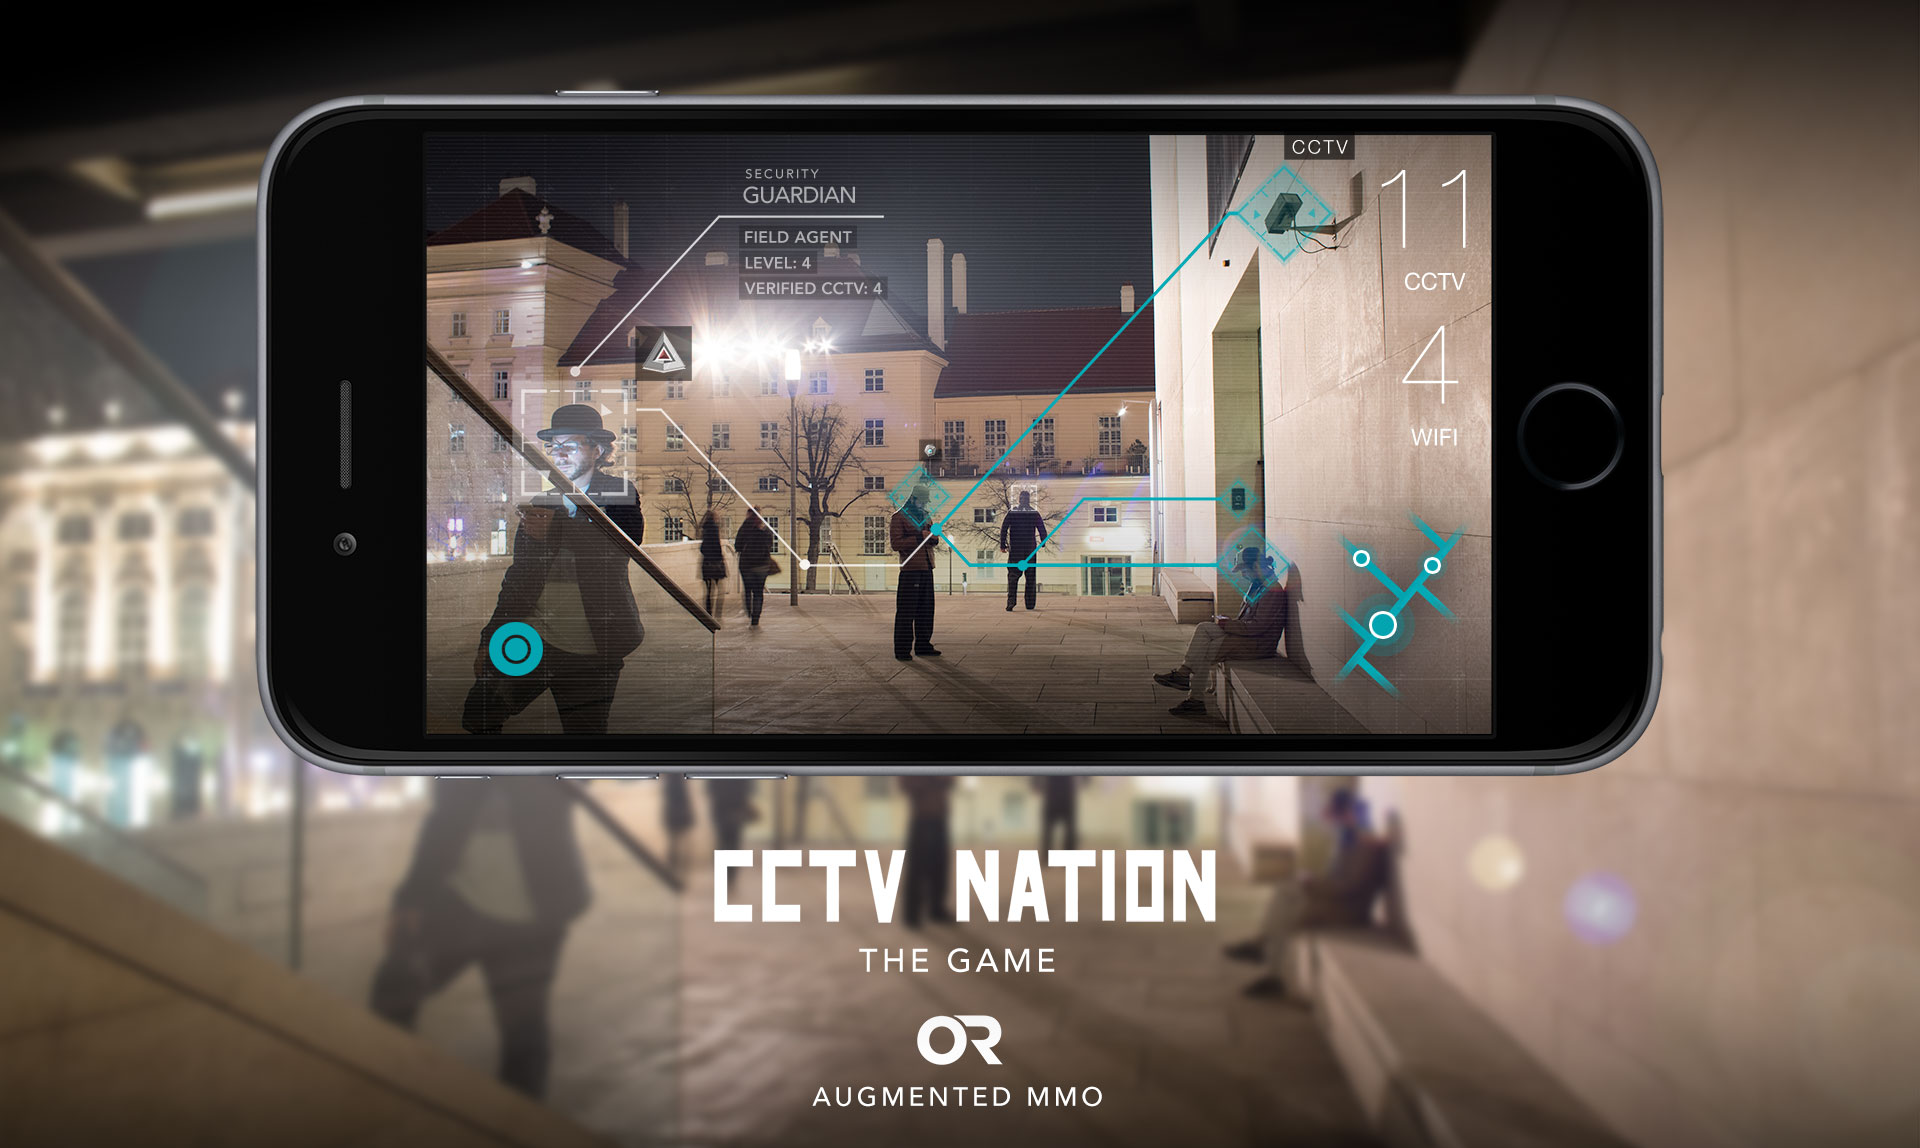 CCTV NATION - THE GAME LOCATION BASED AUGMENTED MMO by OPEN REALITIES INC.